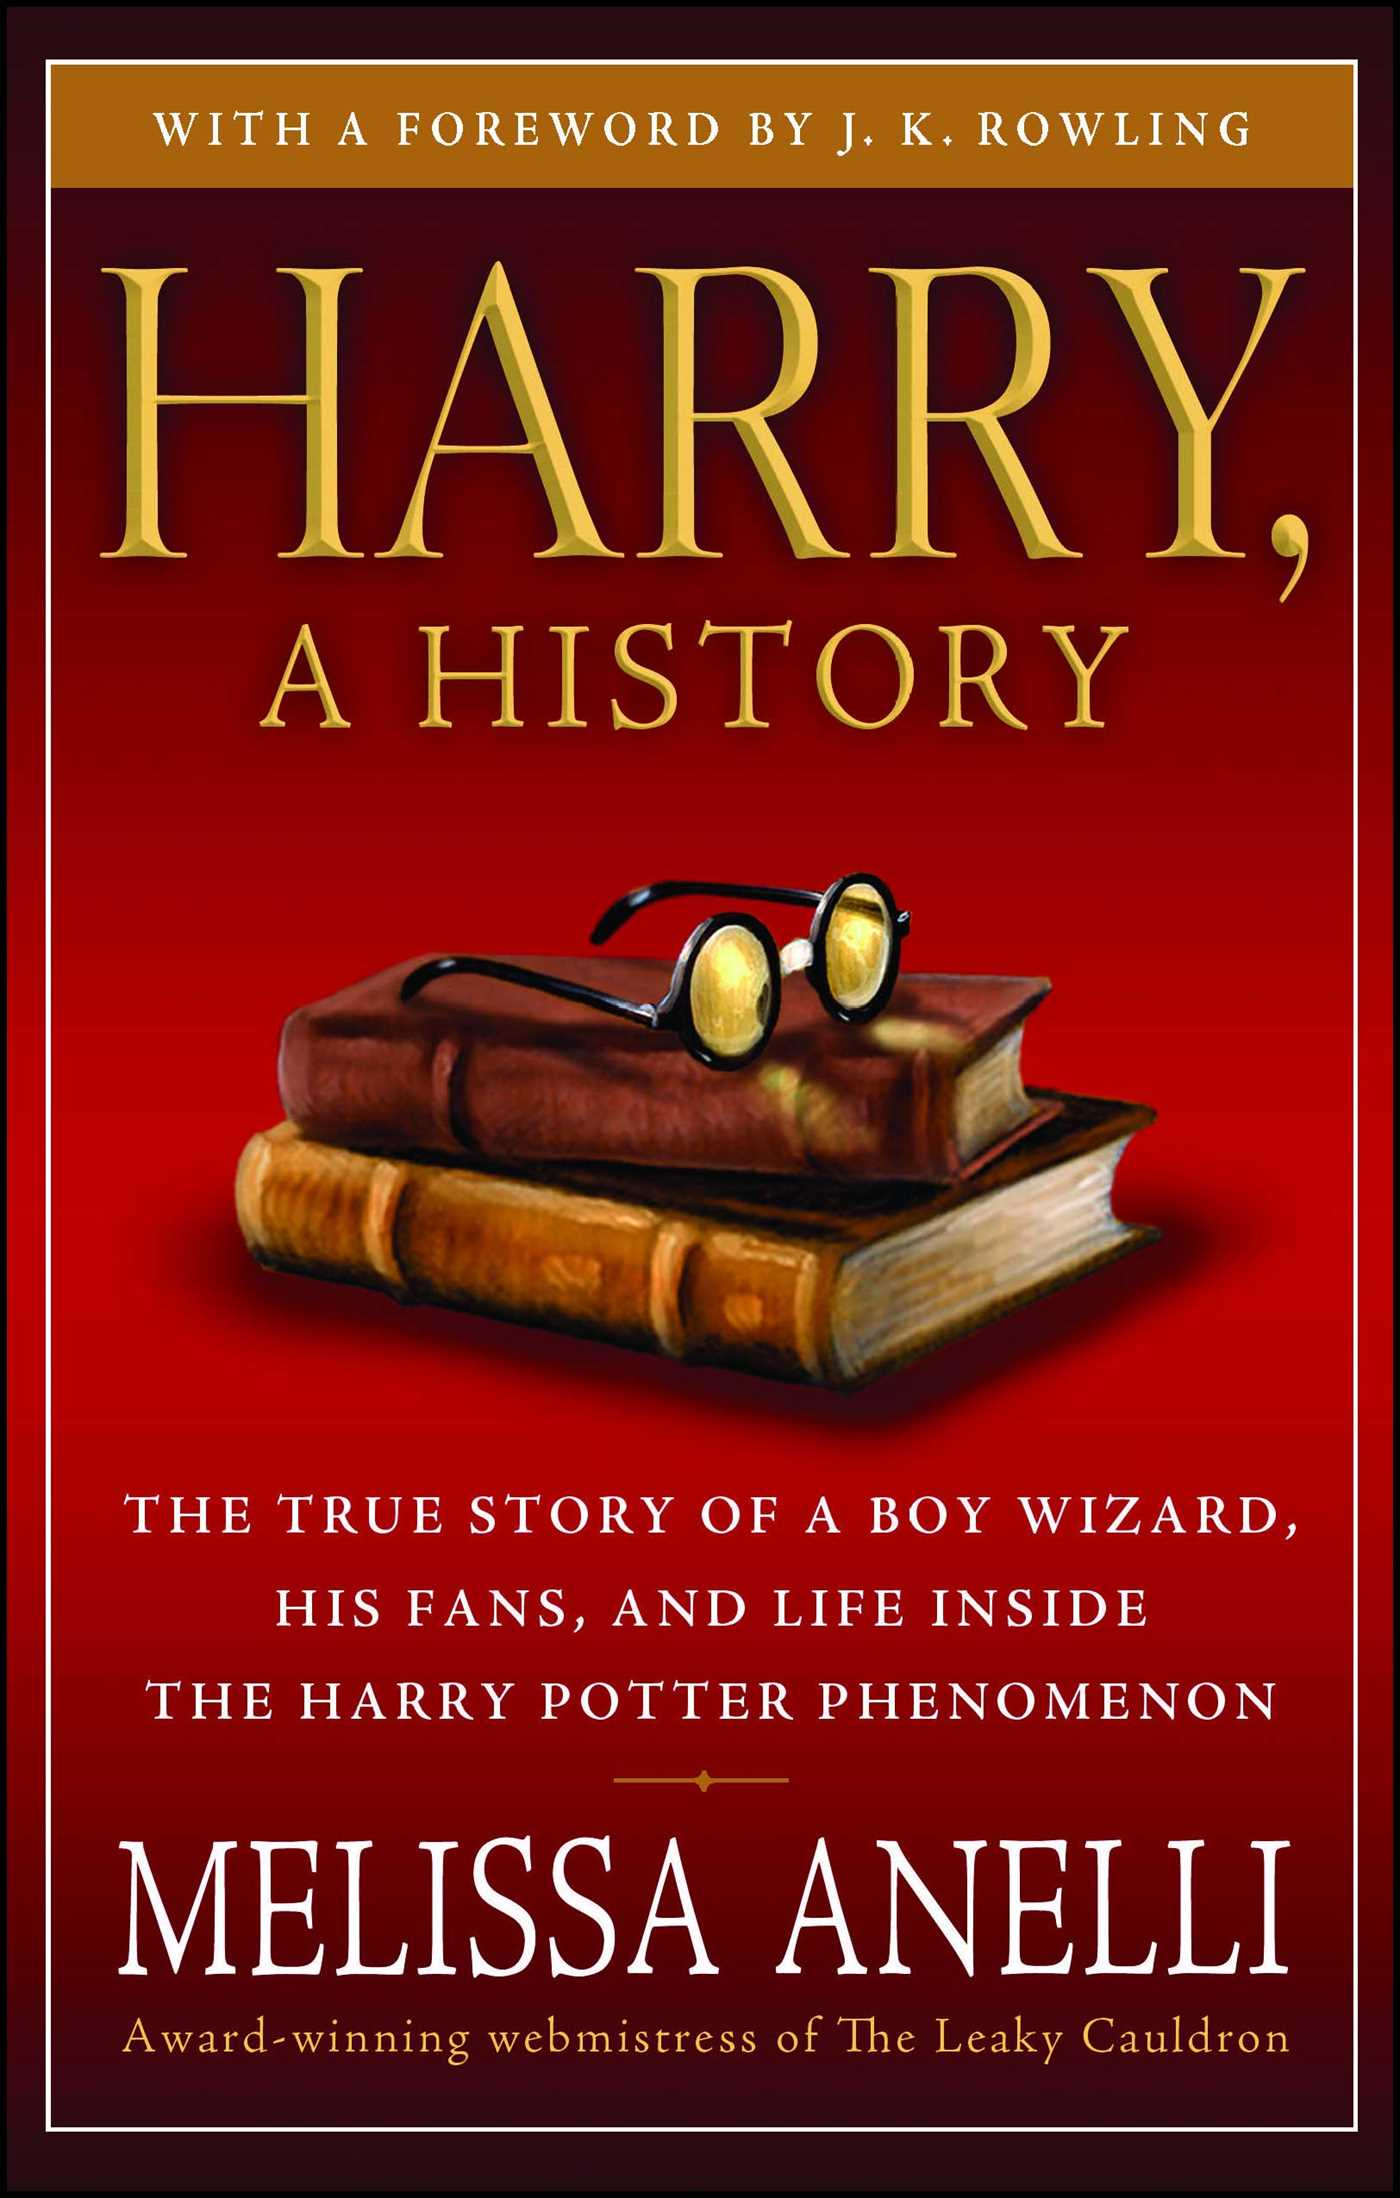 Harry a history now updated with j k rowling interview new chapter photos 9781416594055 hr